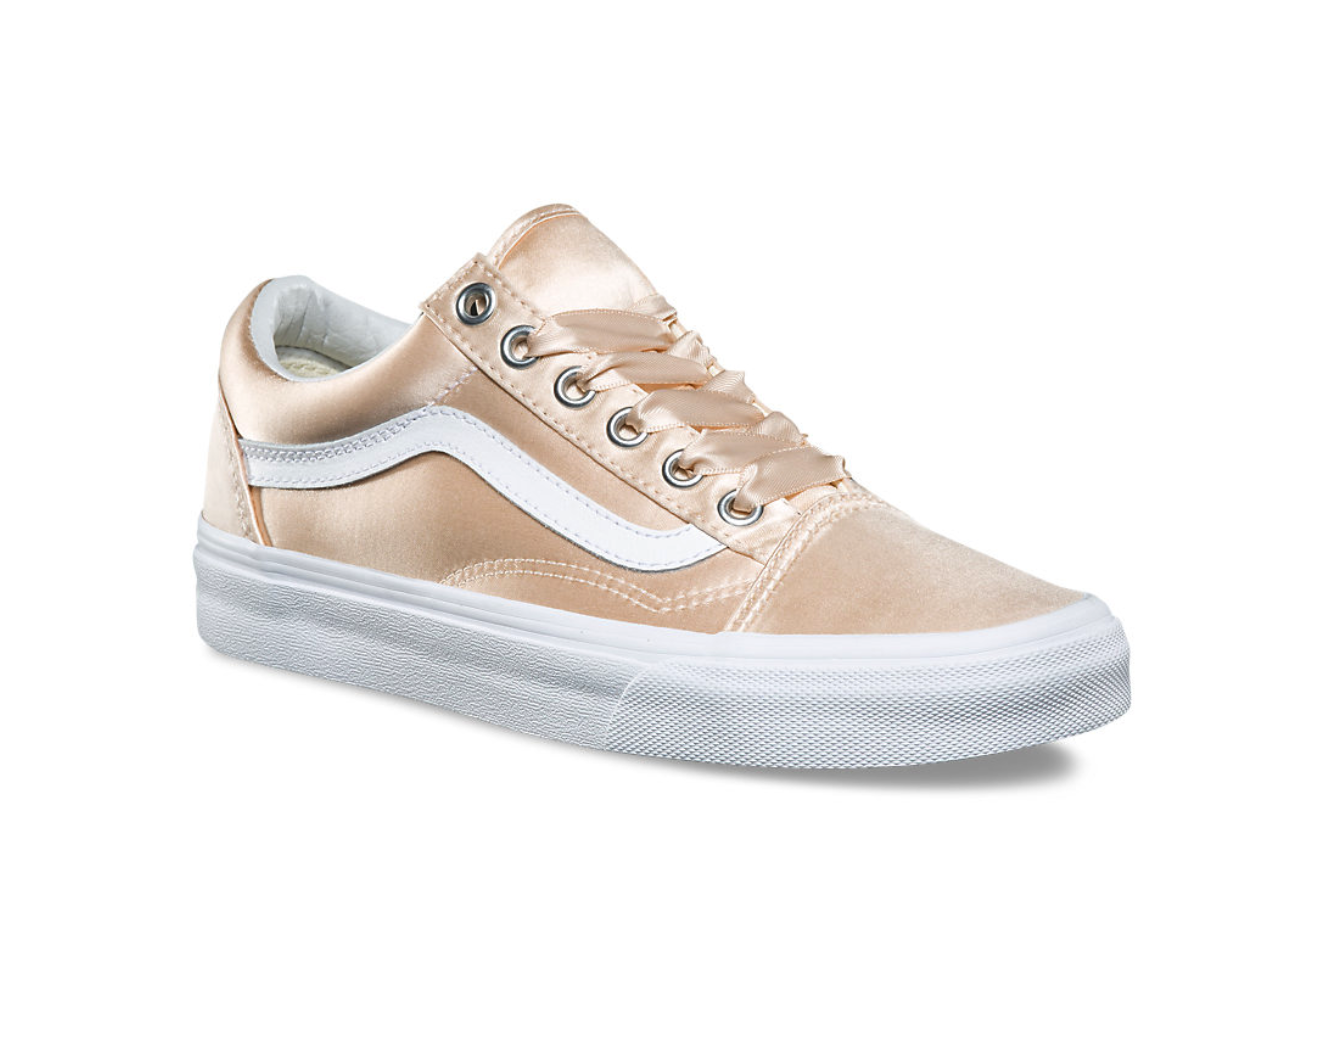 "Vans Satin Lux Old Skool in ""Blush/True White"" $70, Vans.com"